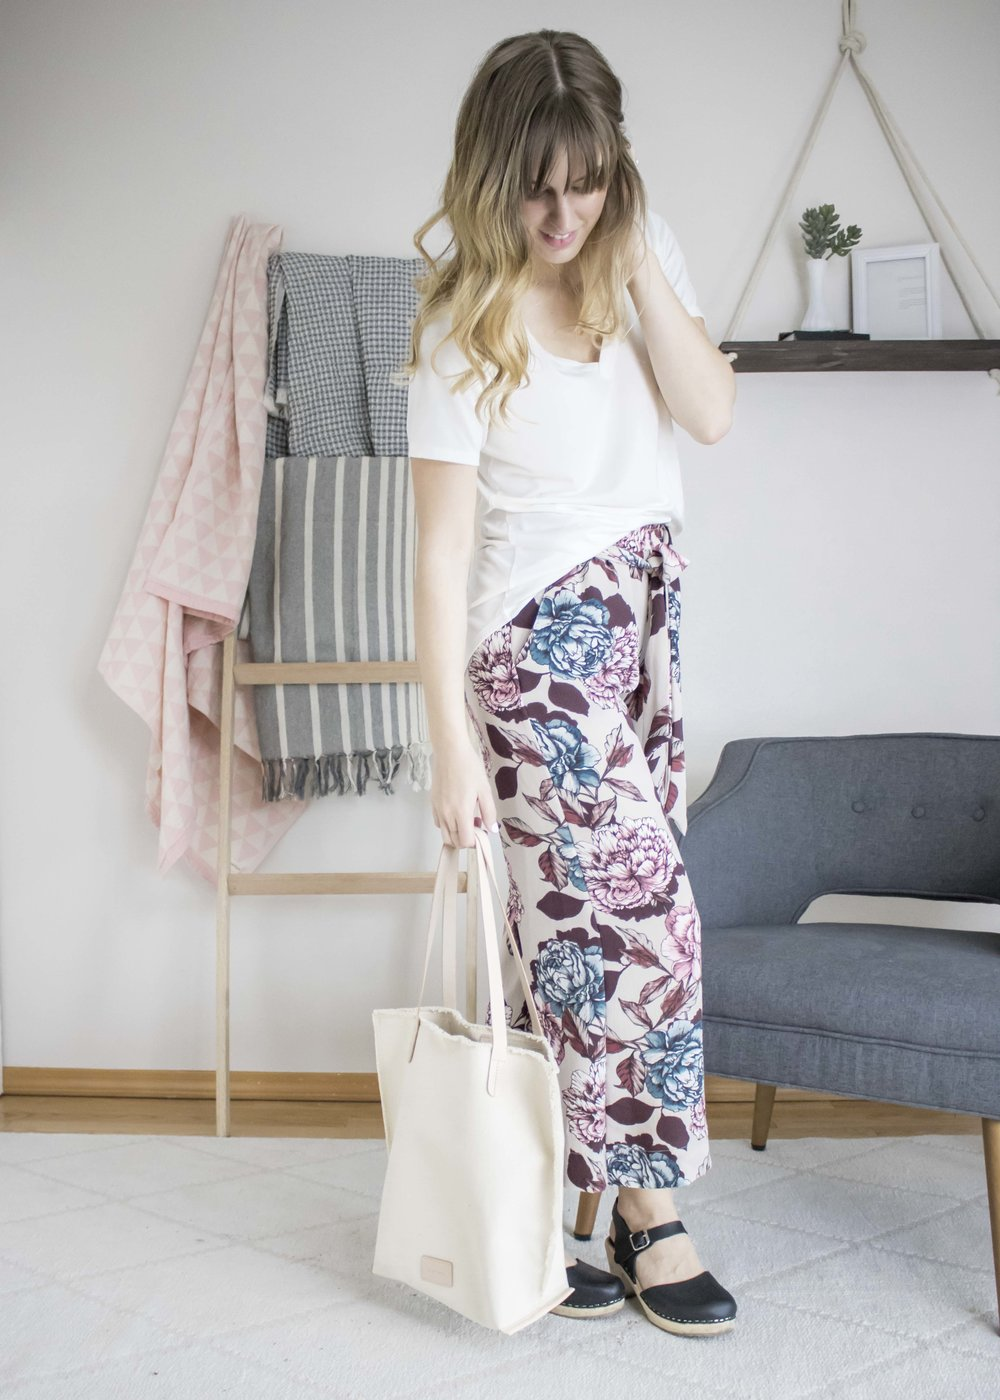 no one ever said basics had to be boring and these flowy pants prove just that! they're comfortable enough to lounge around in on a warm spring day and simple to transition for a more dressed-up look. click on the image for more tips on styling these floral print pants.